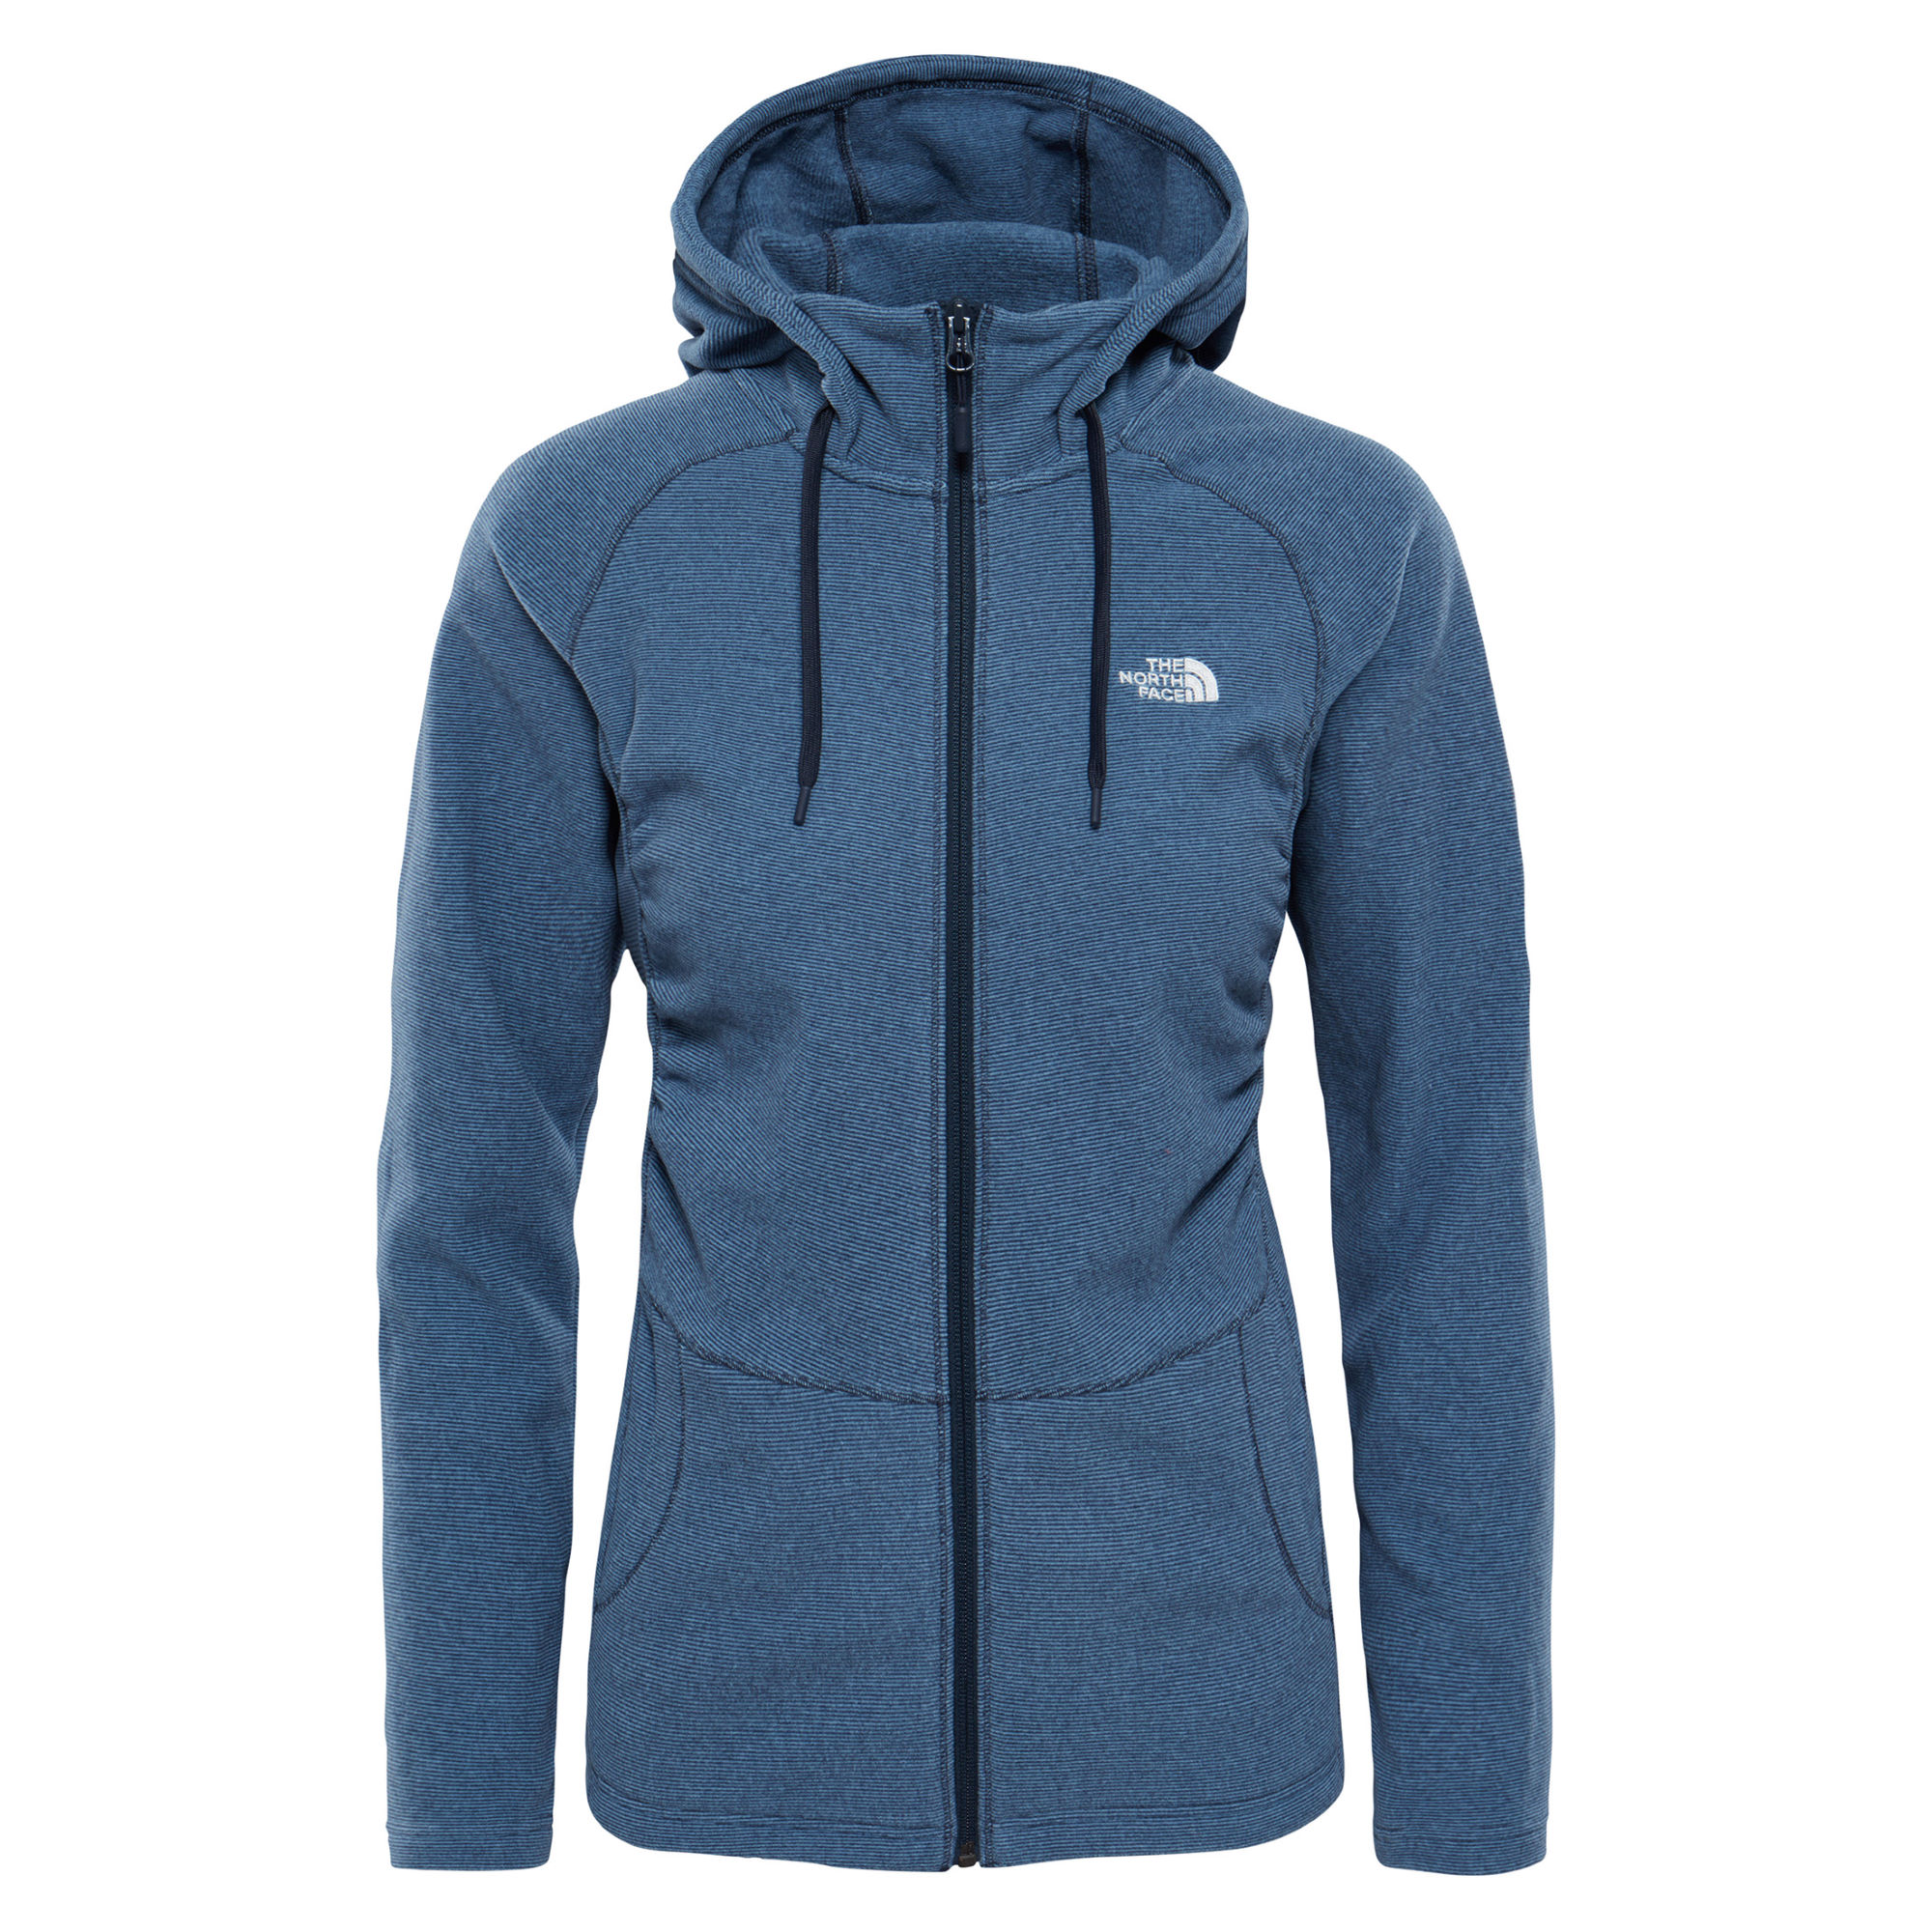 The north face womens hoodies